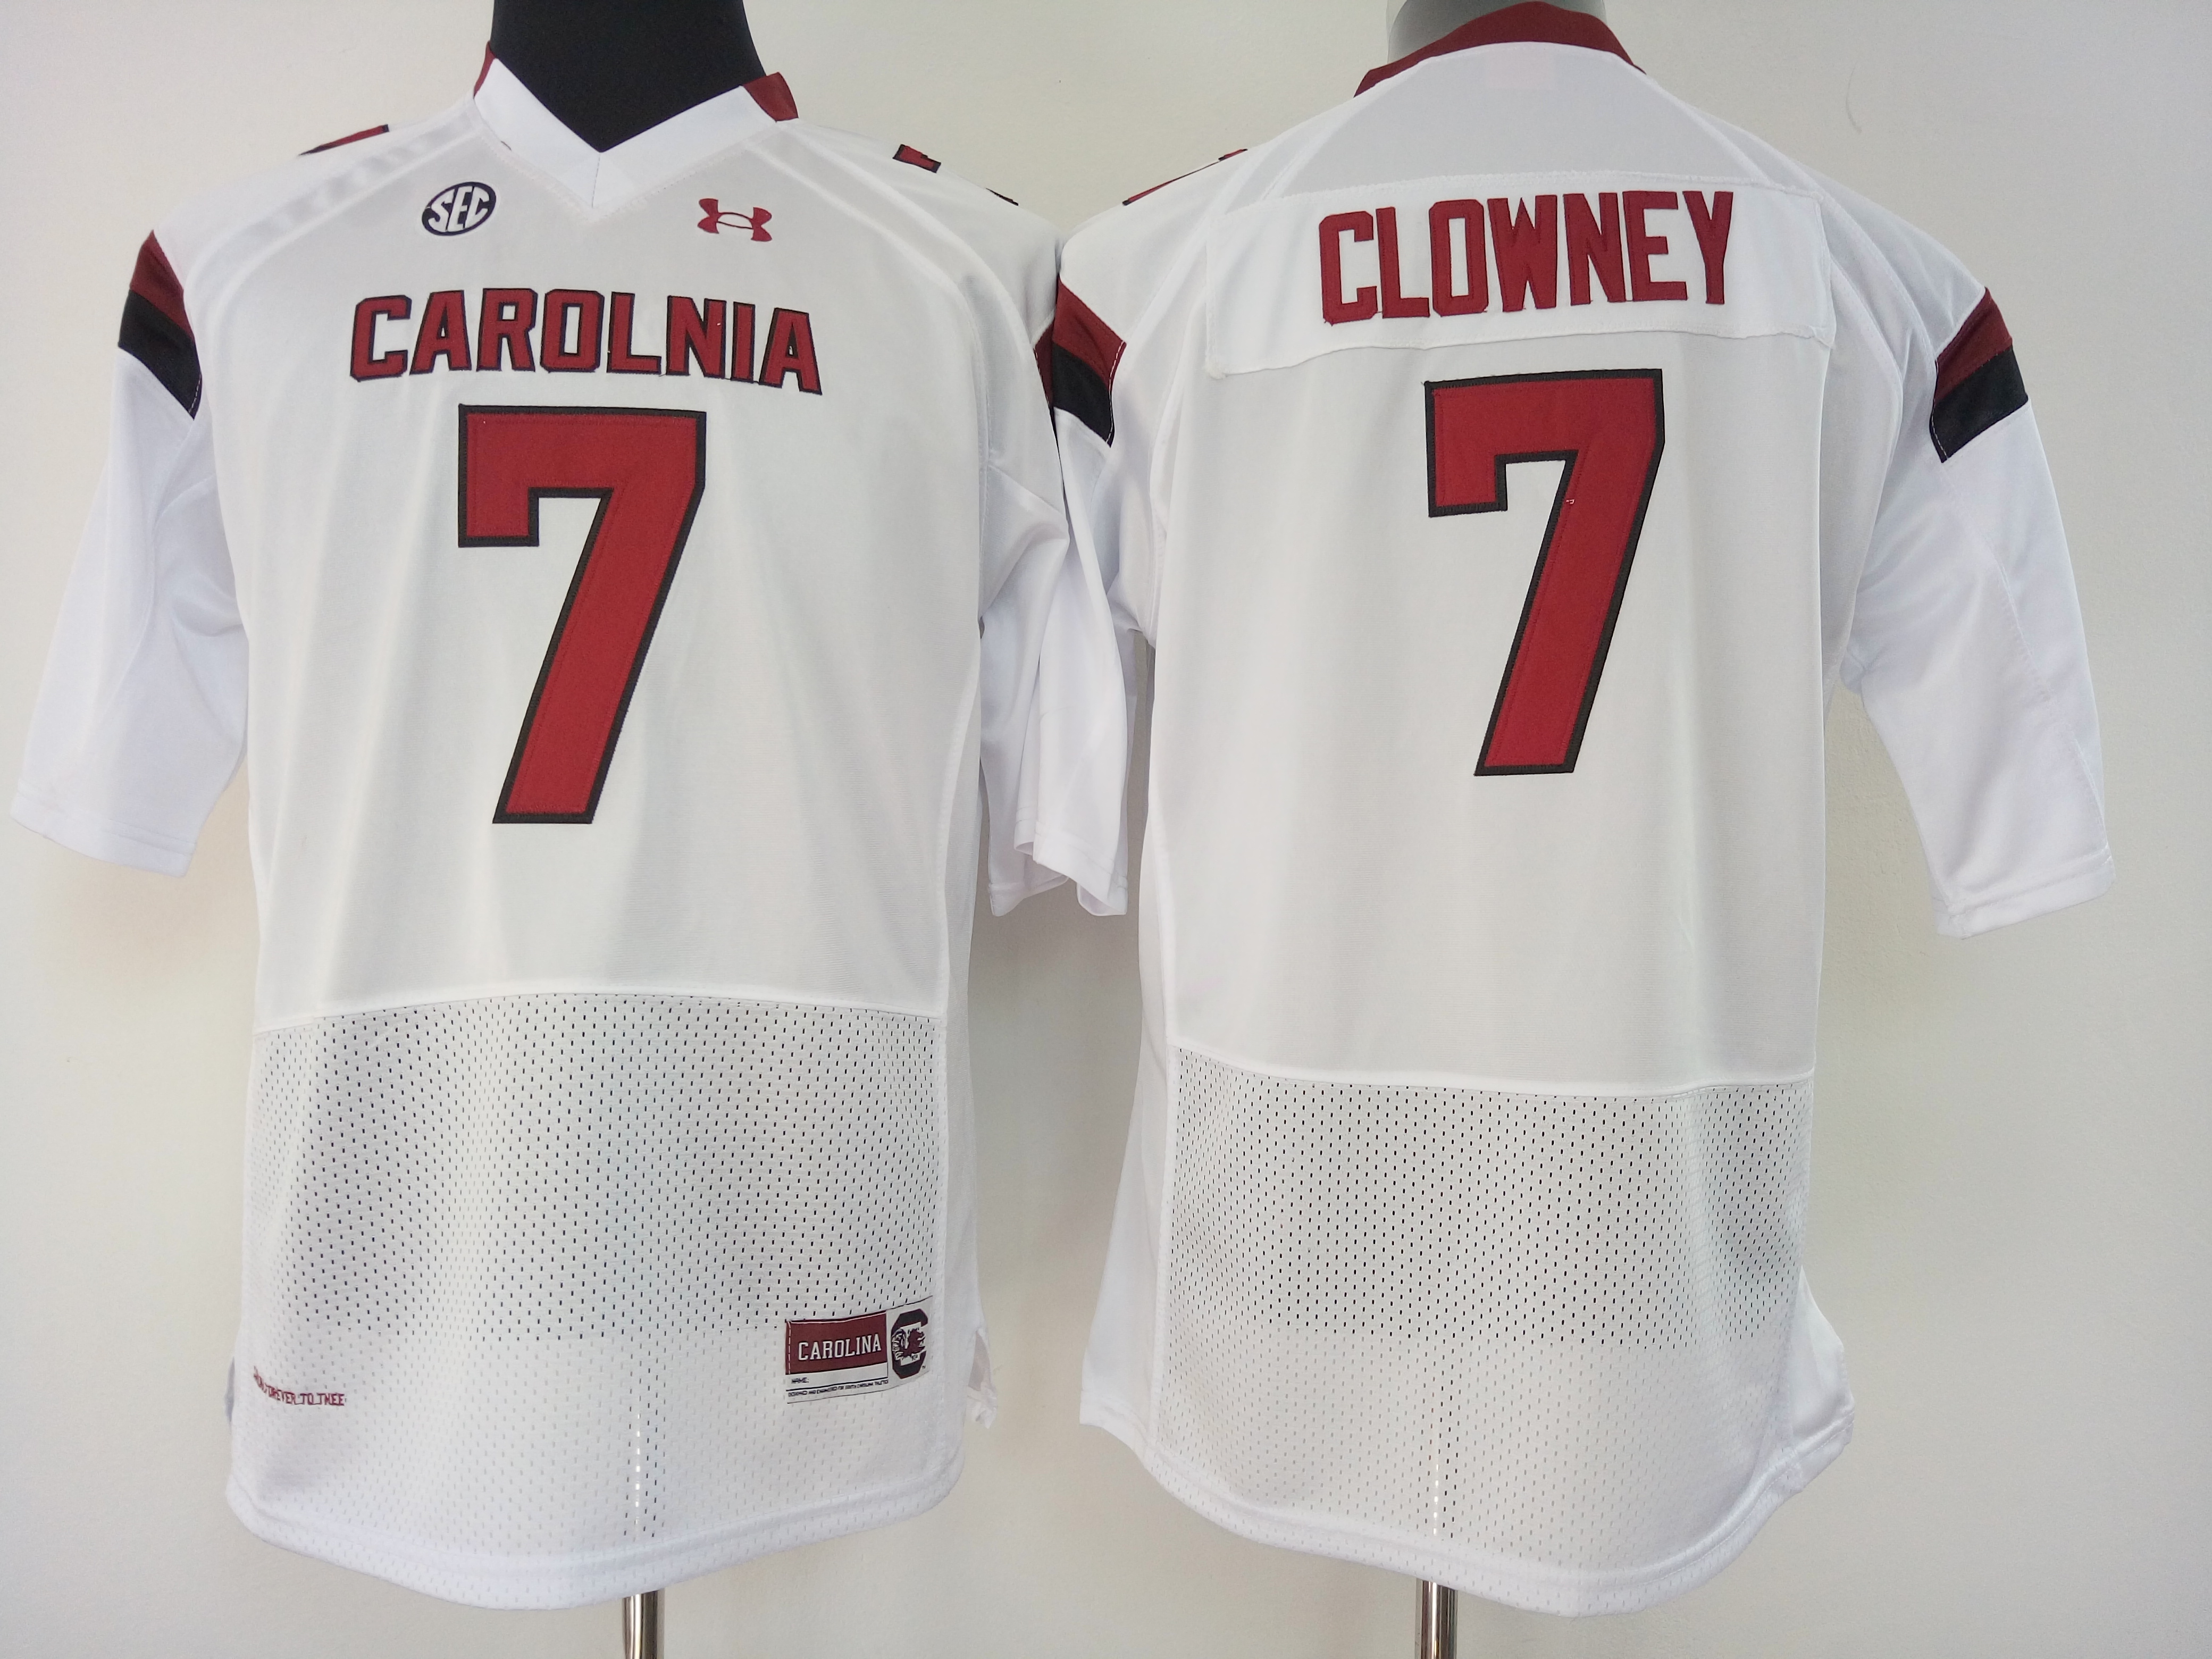 NCAA Womens South Carolina Gamecock White 7 clowney jerseys